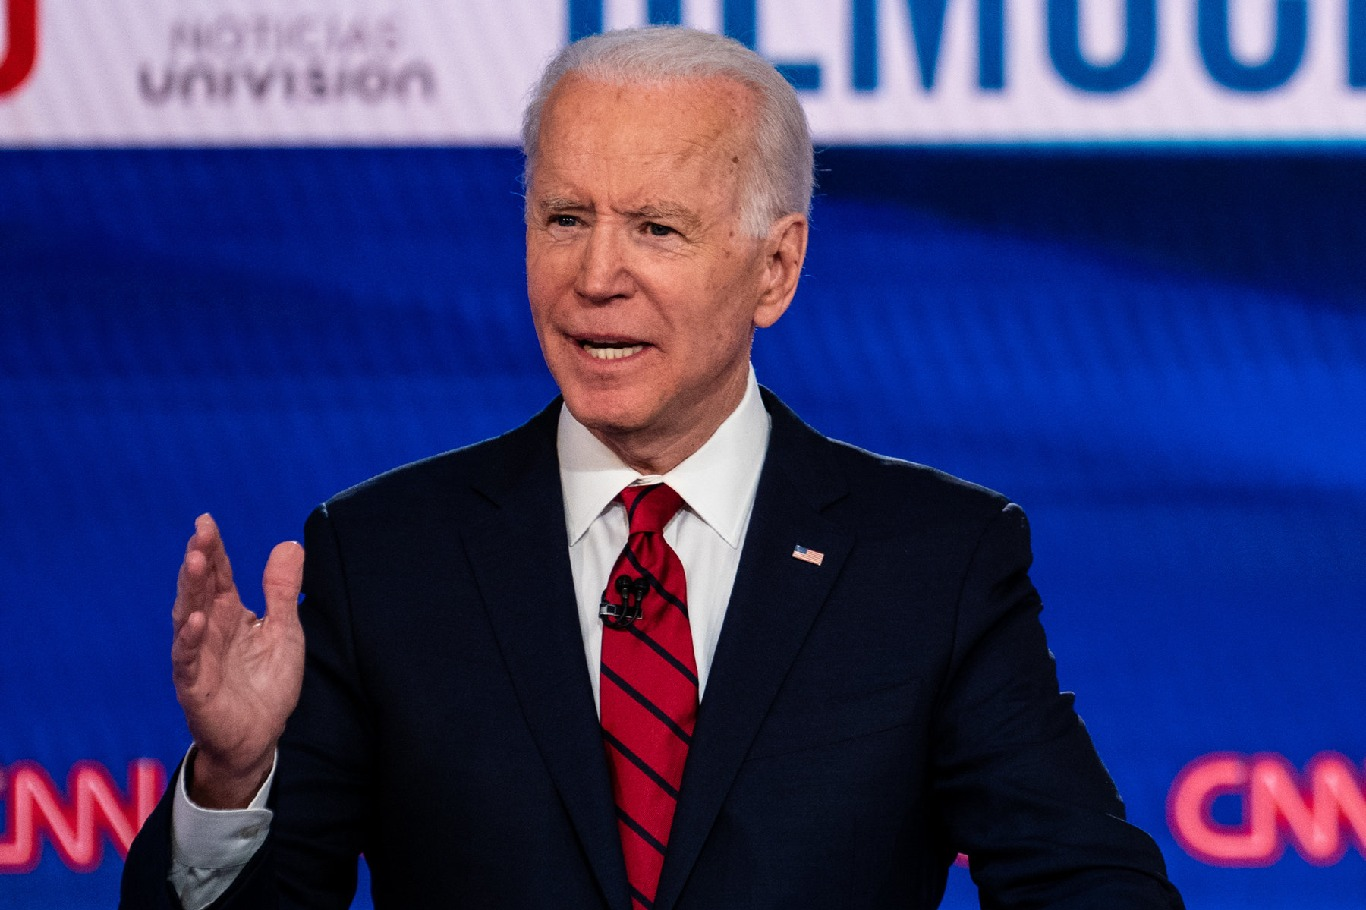 Joe Biden promises that he will give citizenship for 1 crore people if he wins